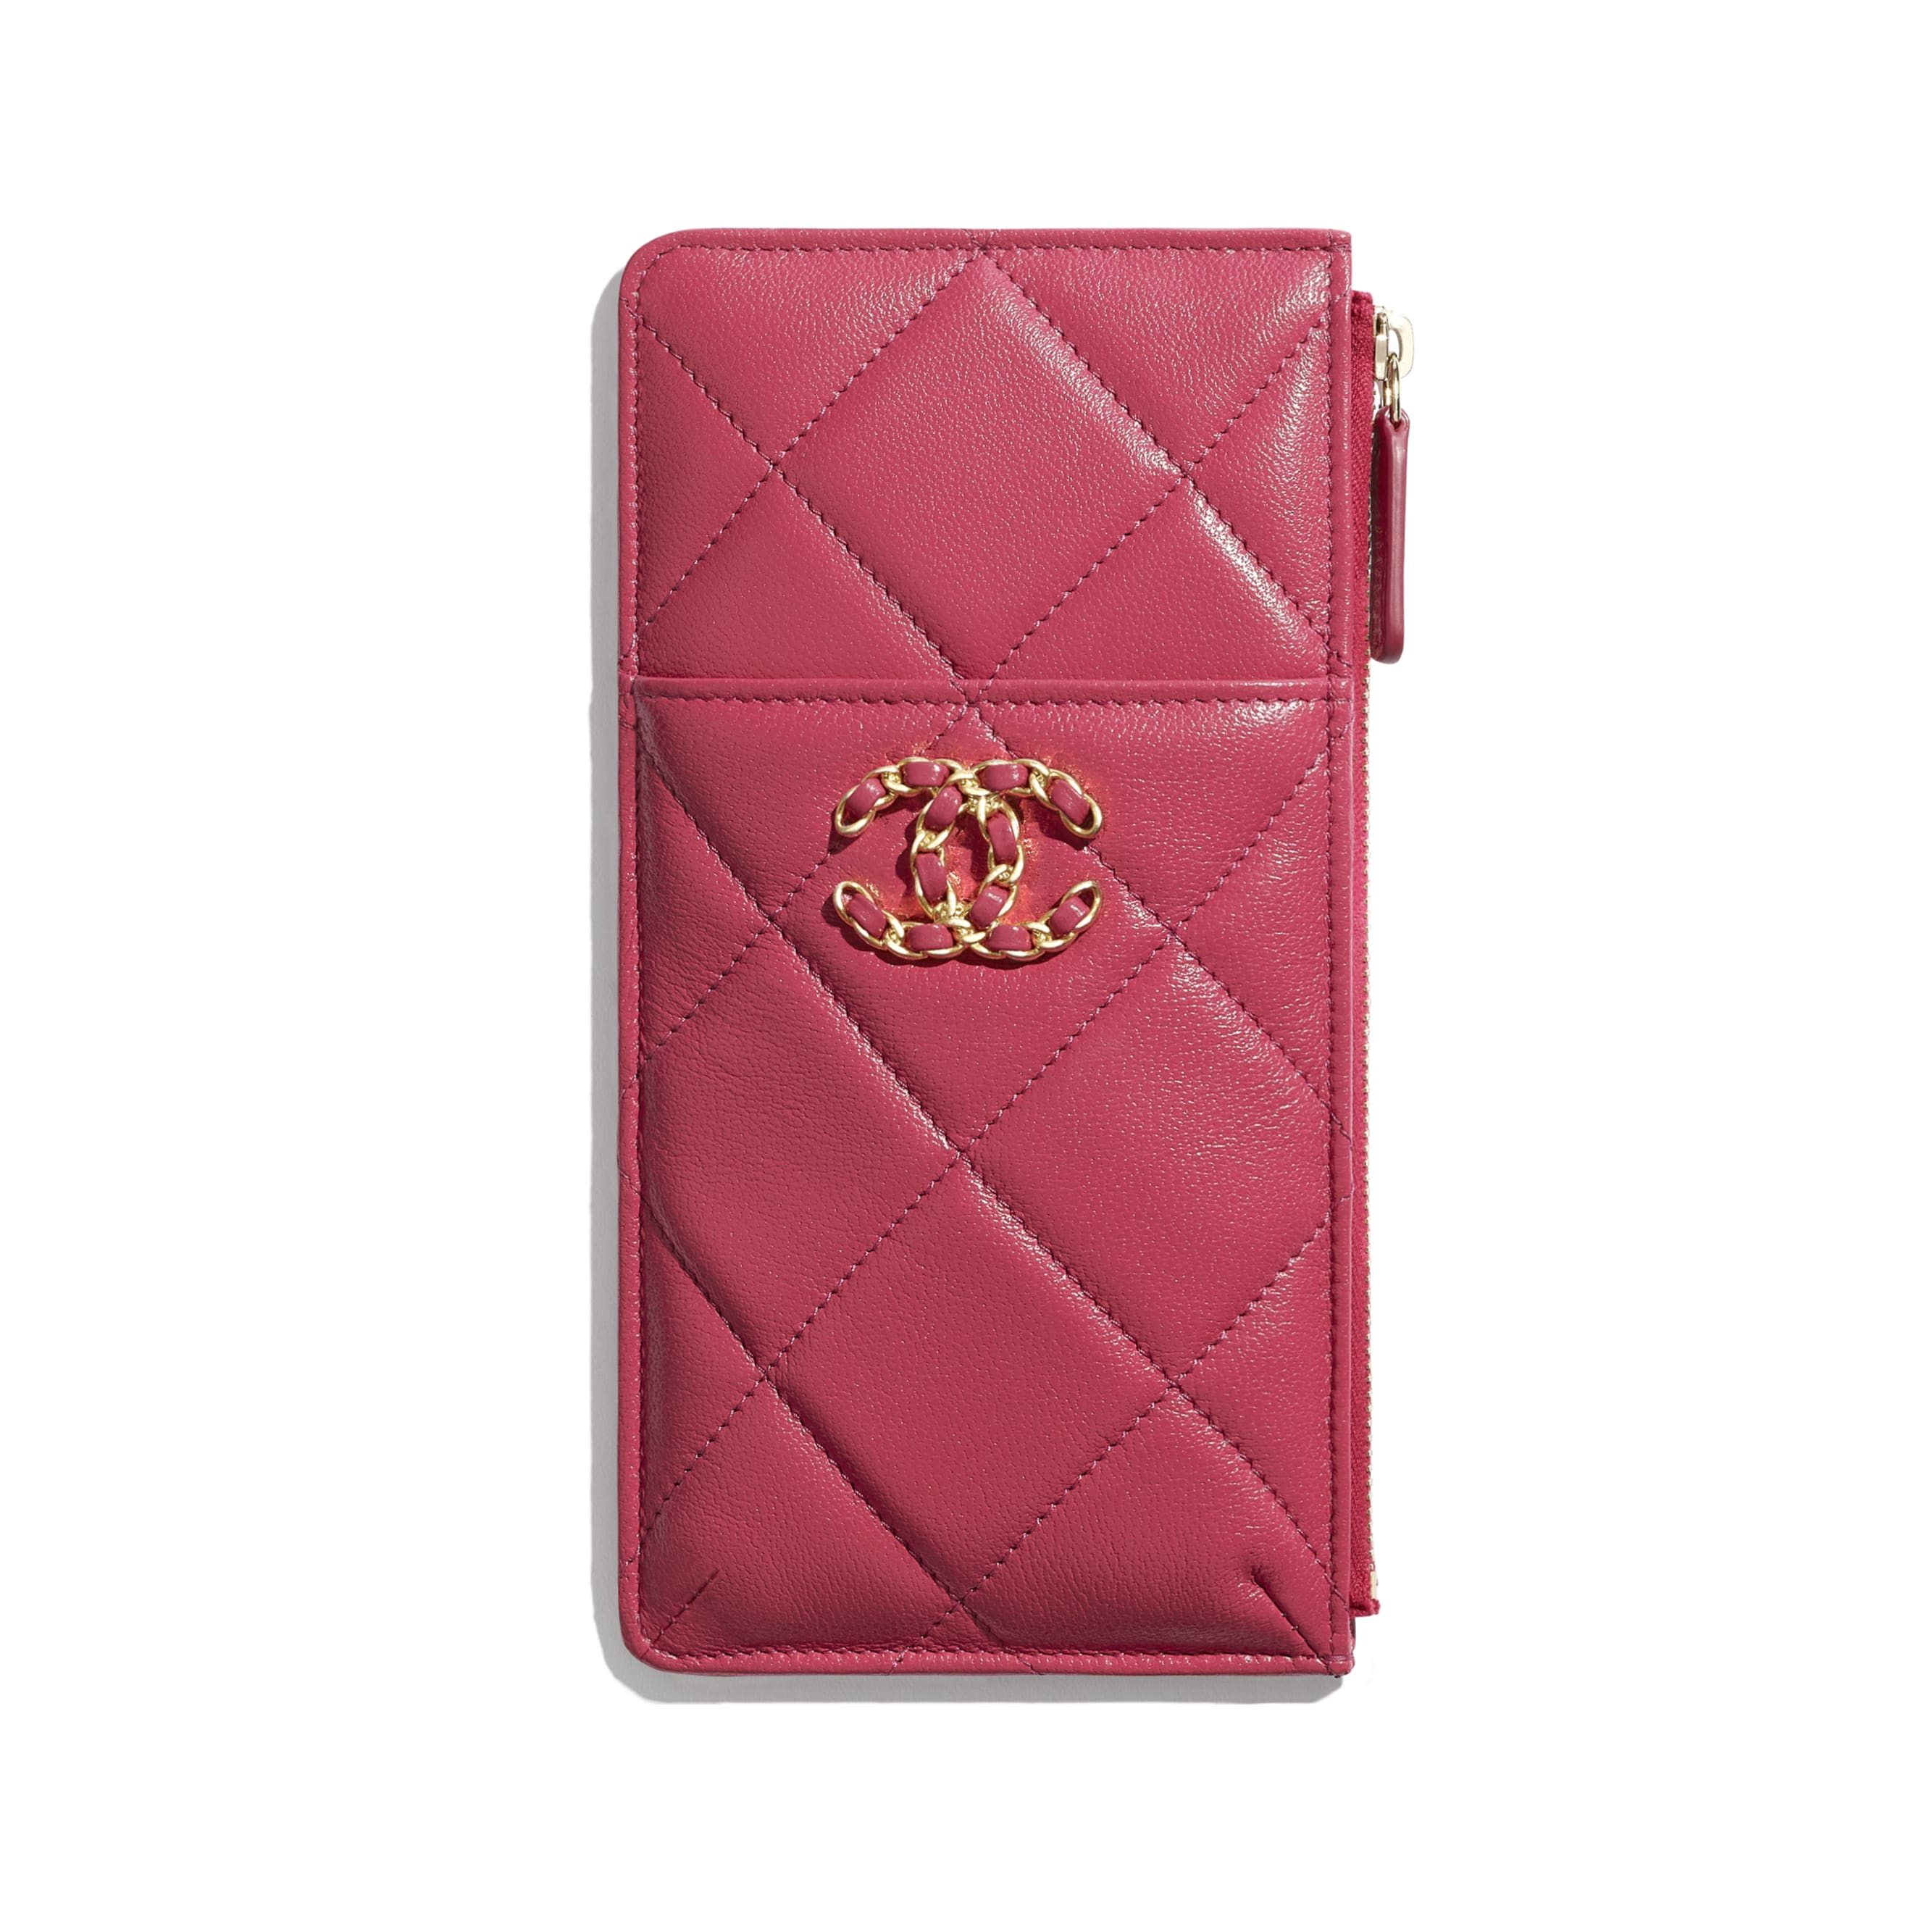 CHANEL 19 Phone & Card Holder - Dark Pink - Lambskin, Gold-Tone, Silver-Tone & Ruthenium-Finish Metal - CHANEL - Default view - see standard sized version